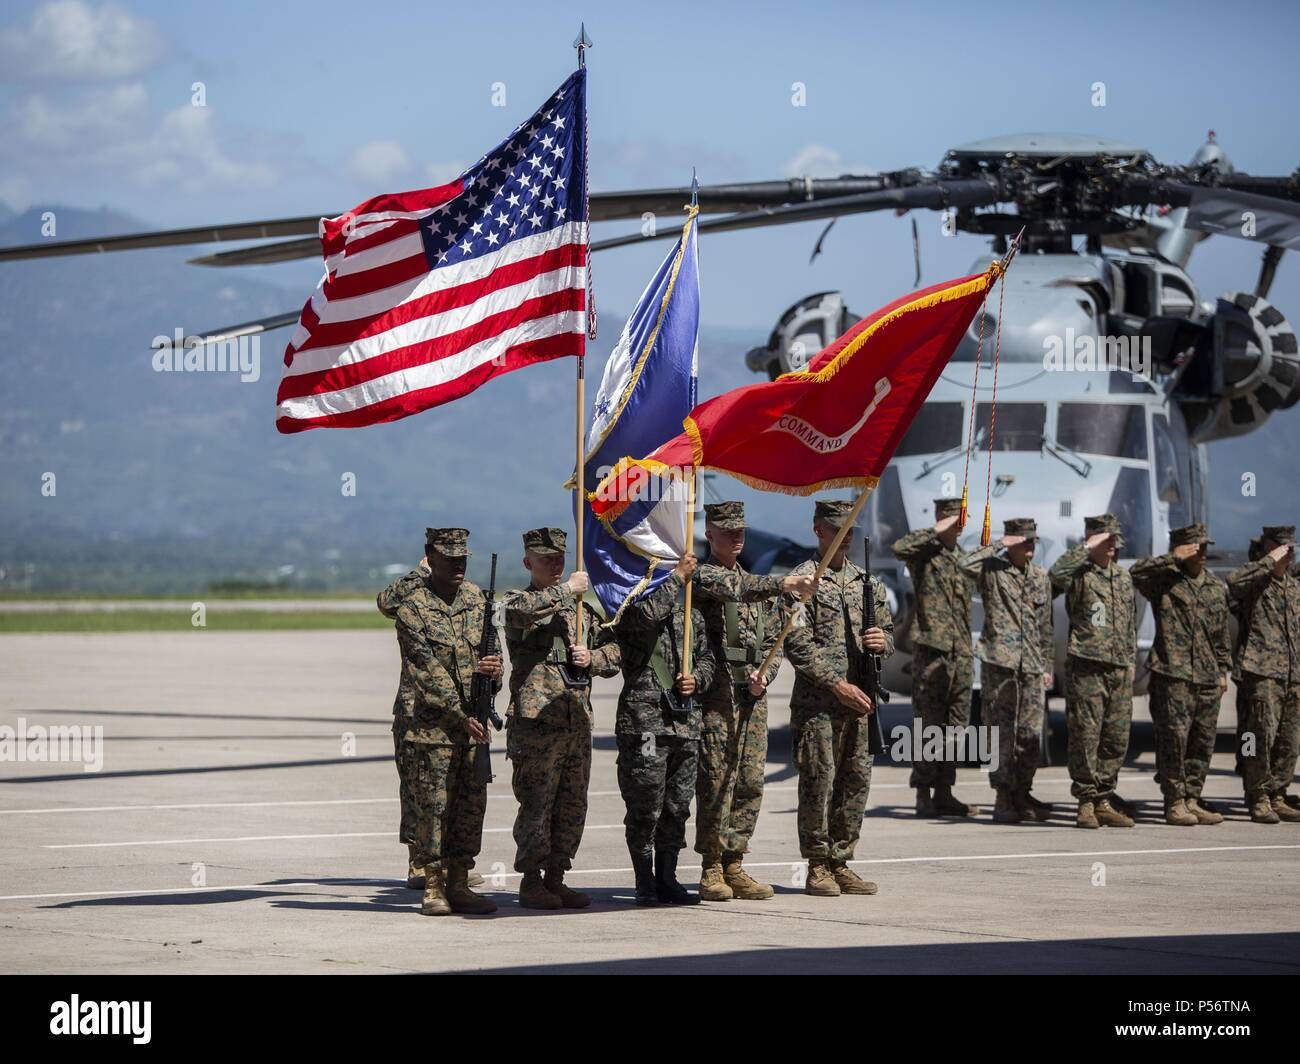 A multinational color guard comprised of Marines with Special Purpose Marine Air-Ground Task Force - Southern Command and a Honduran Army soldier present colors during an opening ceremony on Soto Cano Air Base, Honduras, to mark the beginning of SPMAGTF-SC deployment to Latin America and the Caribbean, June 11, 2018, June 11, 2018. The Marines and sailors of SPMAGTF-SC will conduct security cooperation training and engineering projects alongside partner nation military forces in Central and South America during their deployment. The unit is also on standby to provide humanitarian assistance an Stock Photo